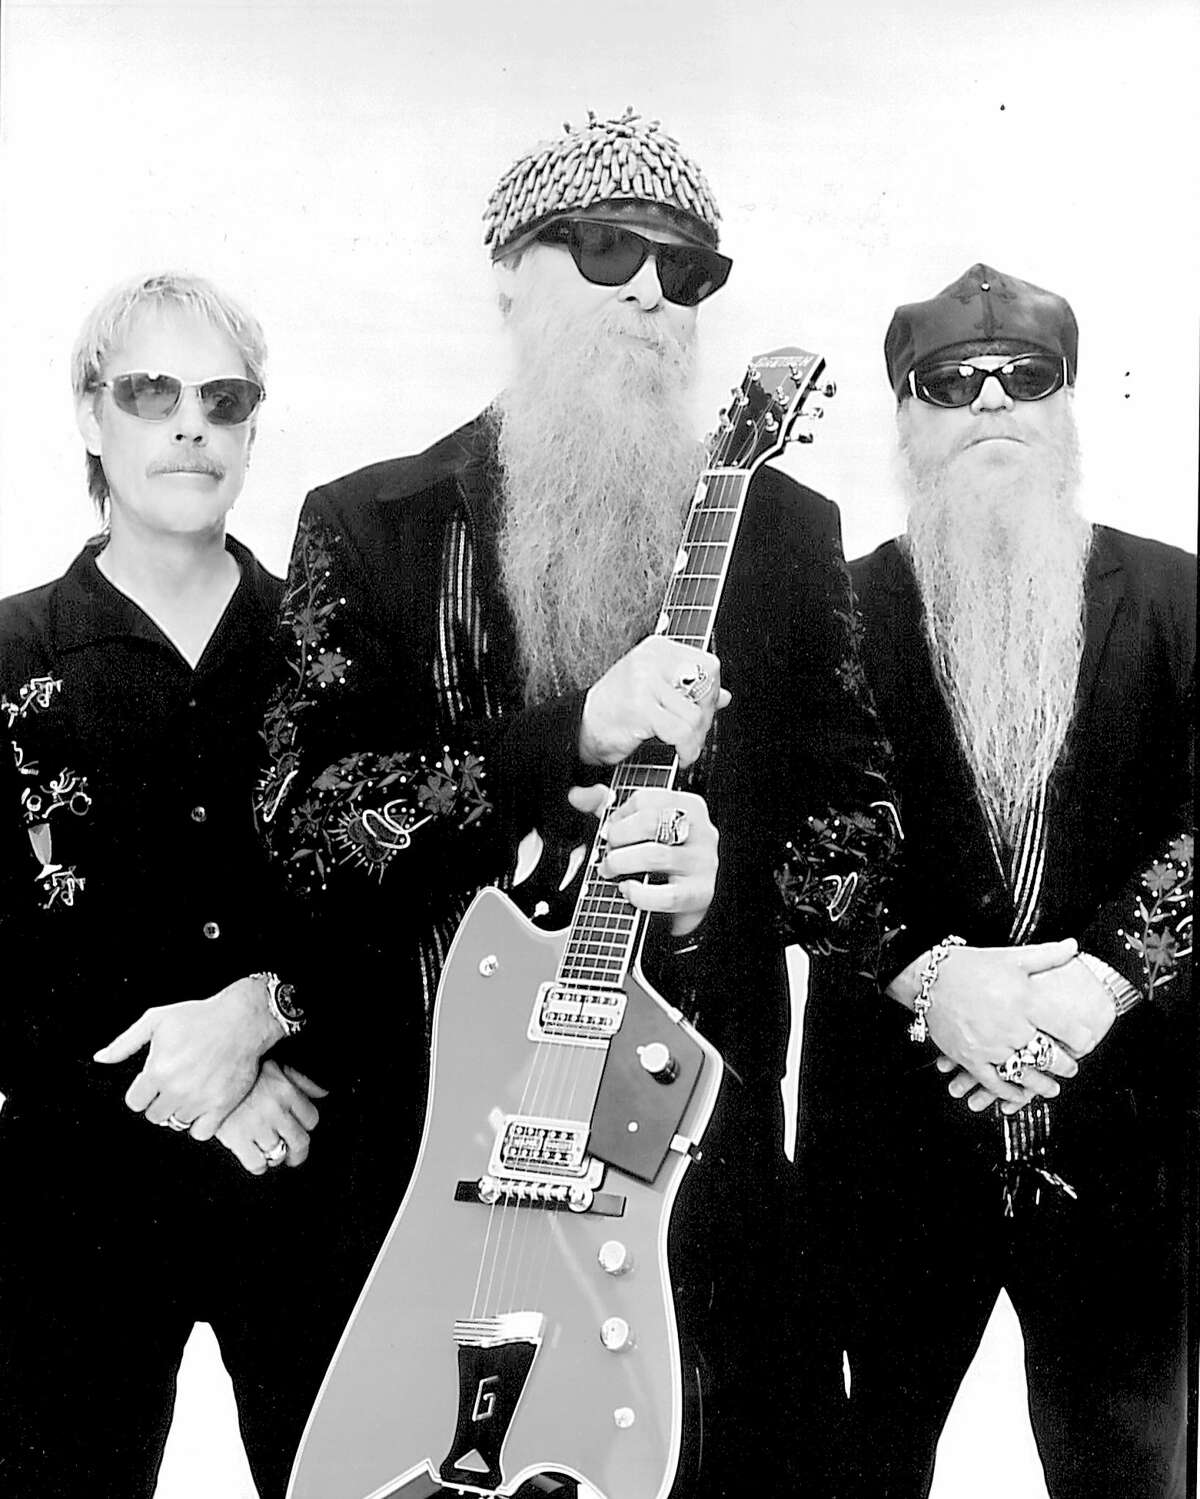 ZZ Top played the Beaumont Civic Center. Photo provided by the artist